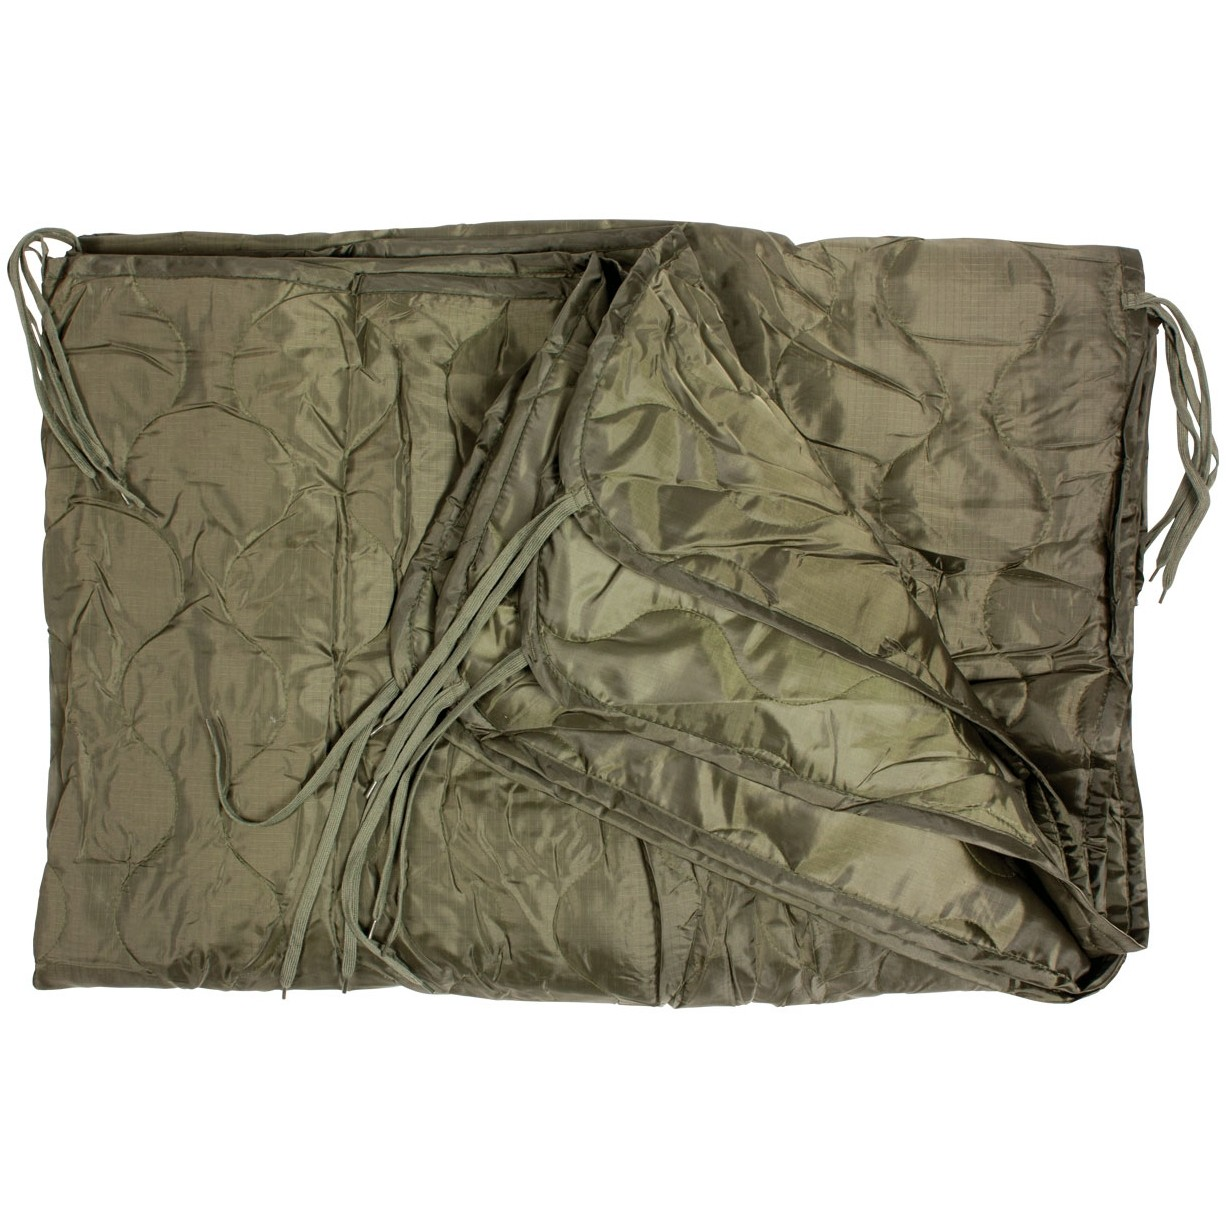 Red Rock Gear G.I. Style Poncho Liner